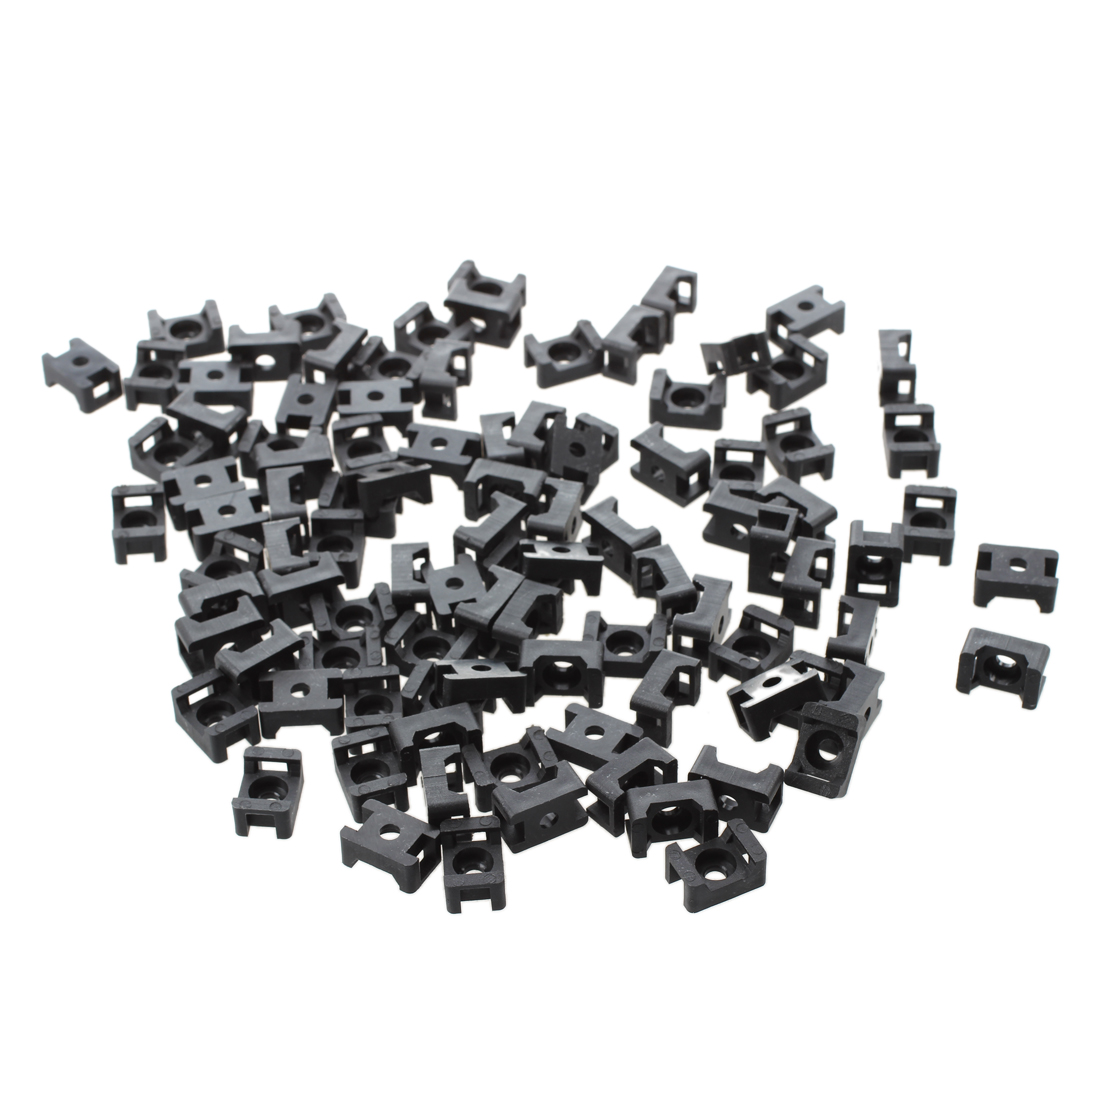 JFBL Hot sale New Black 4.5mm Width Cable Tie Base Saddle Type Mount Wire Holder 100Pcs